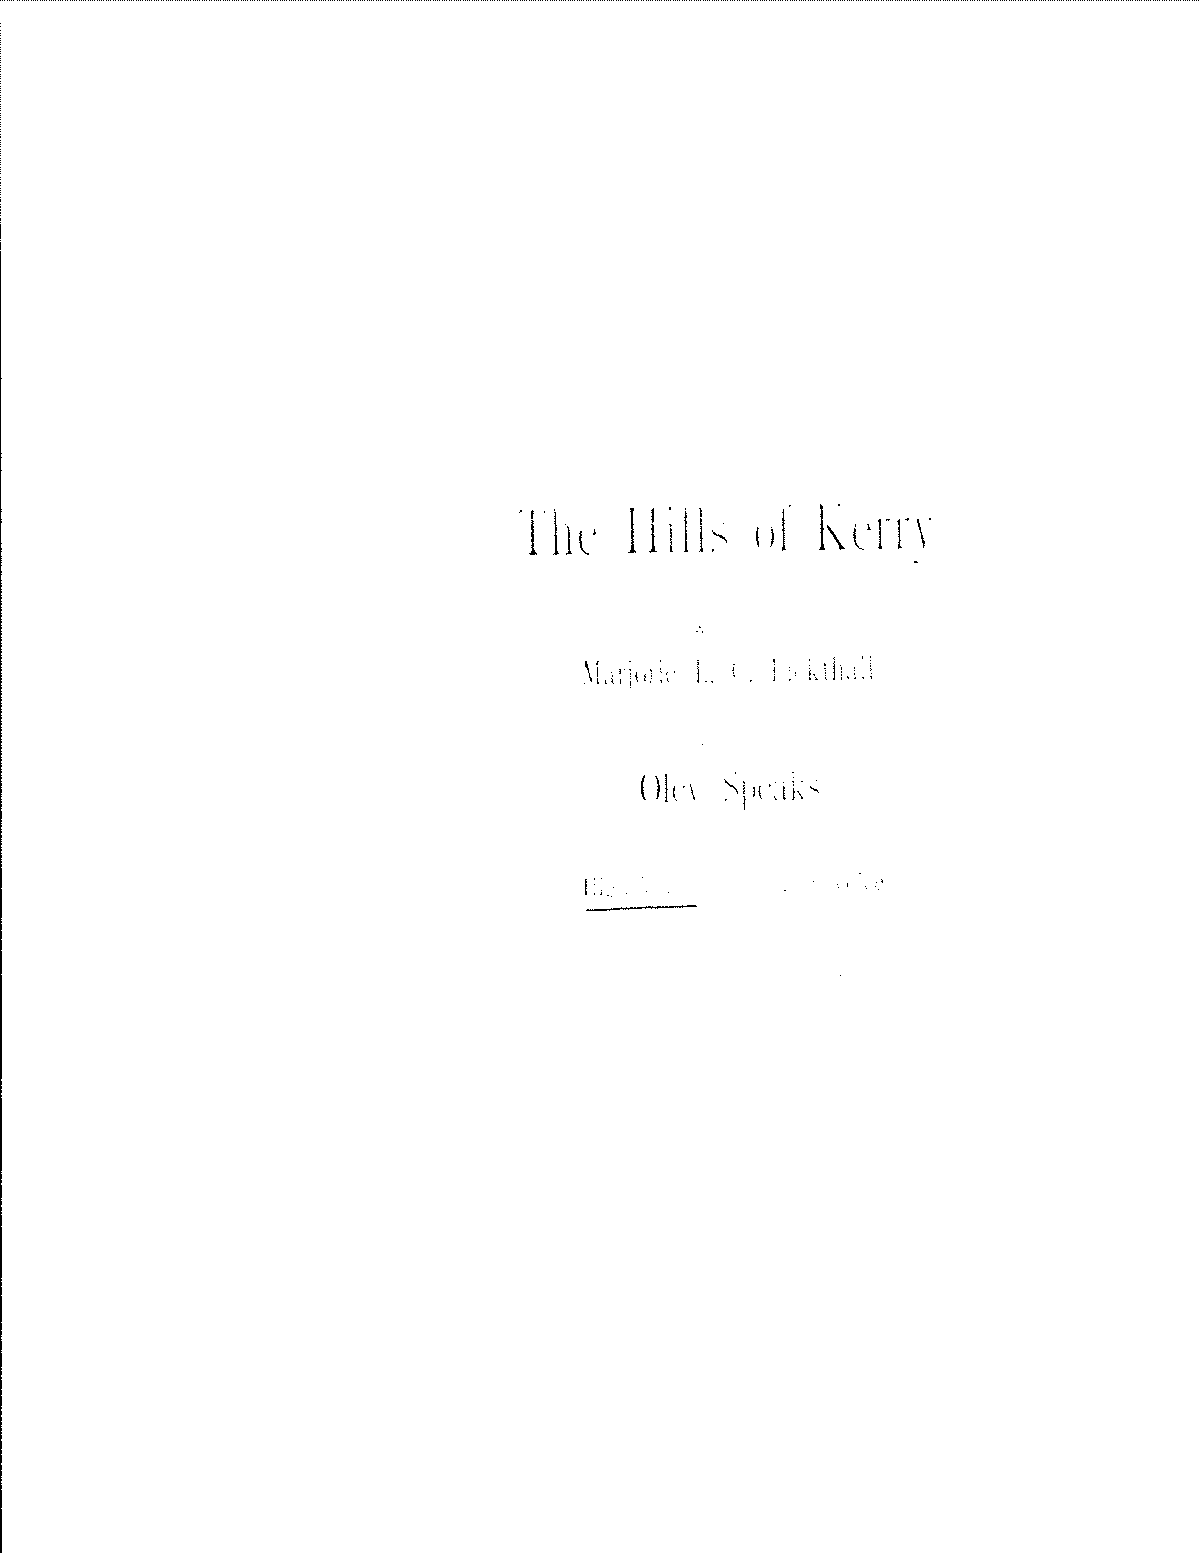 SIBLEY1802.1896.e479-Speaks The Hills of Kerry.pdf